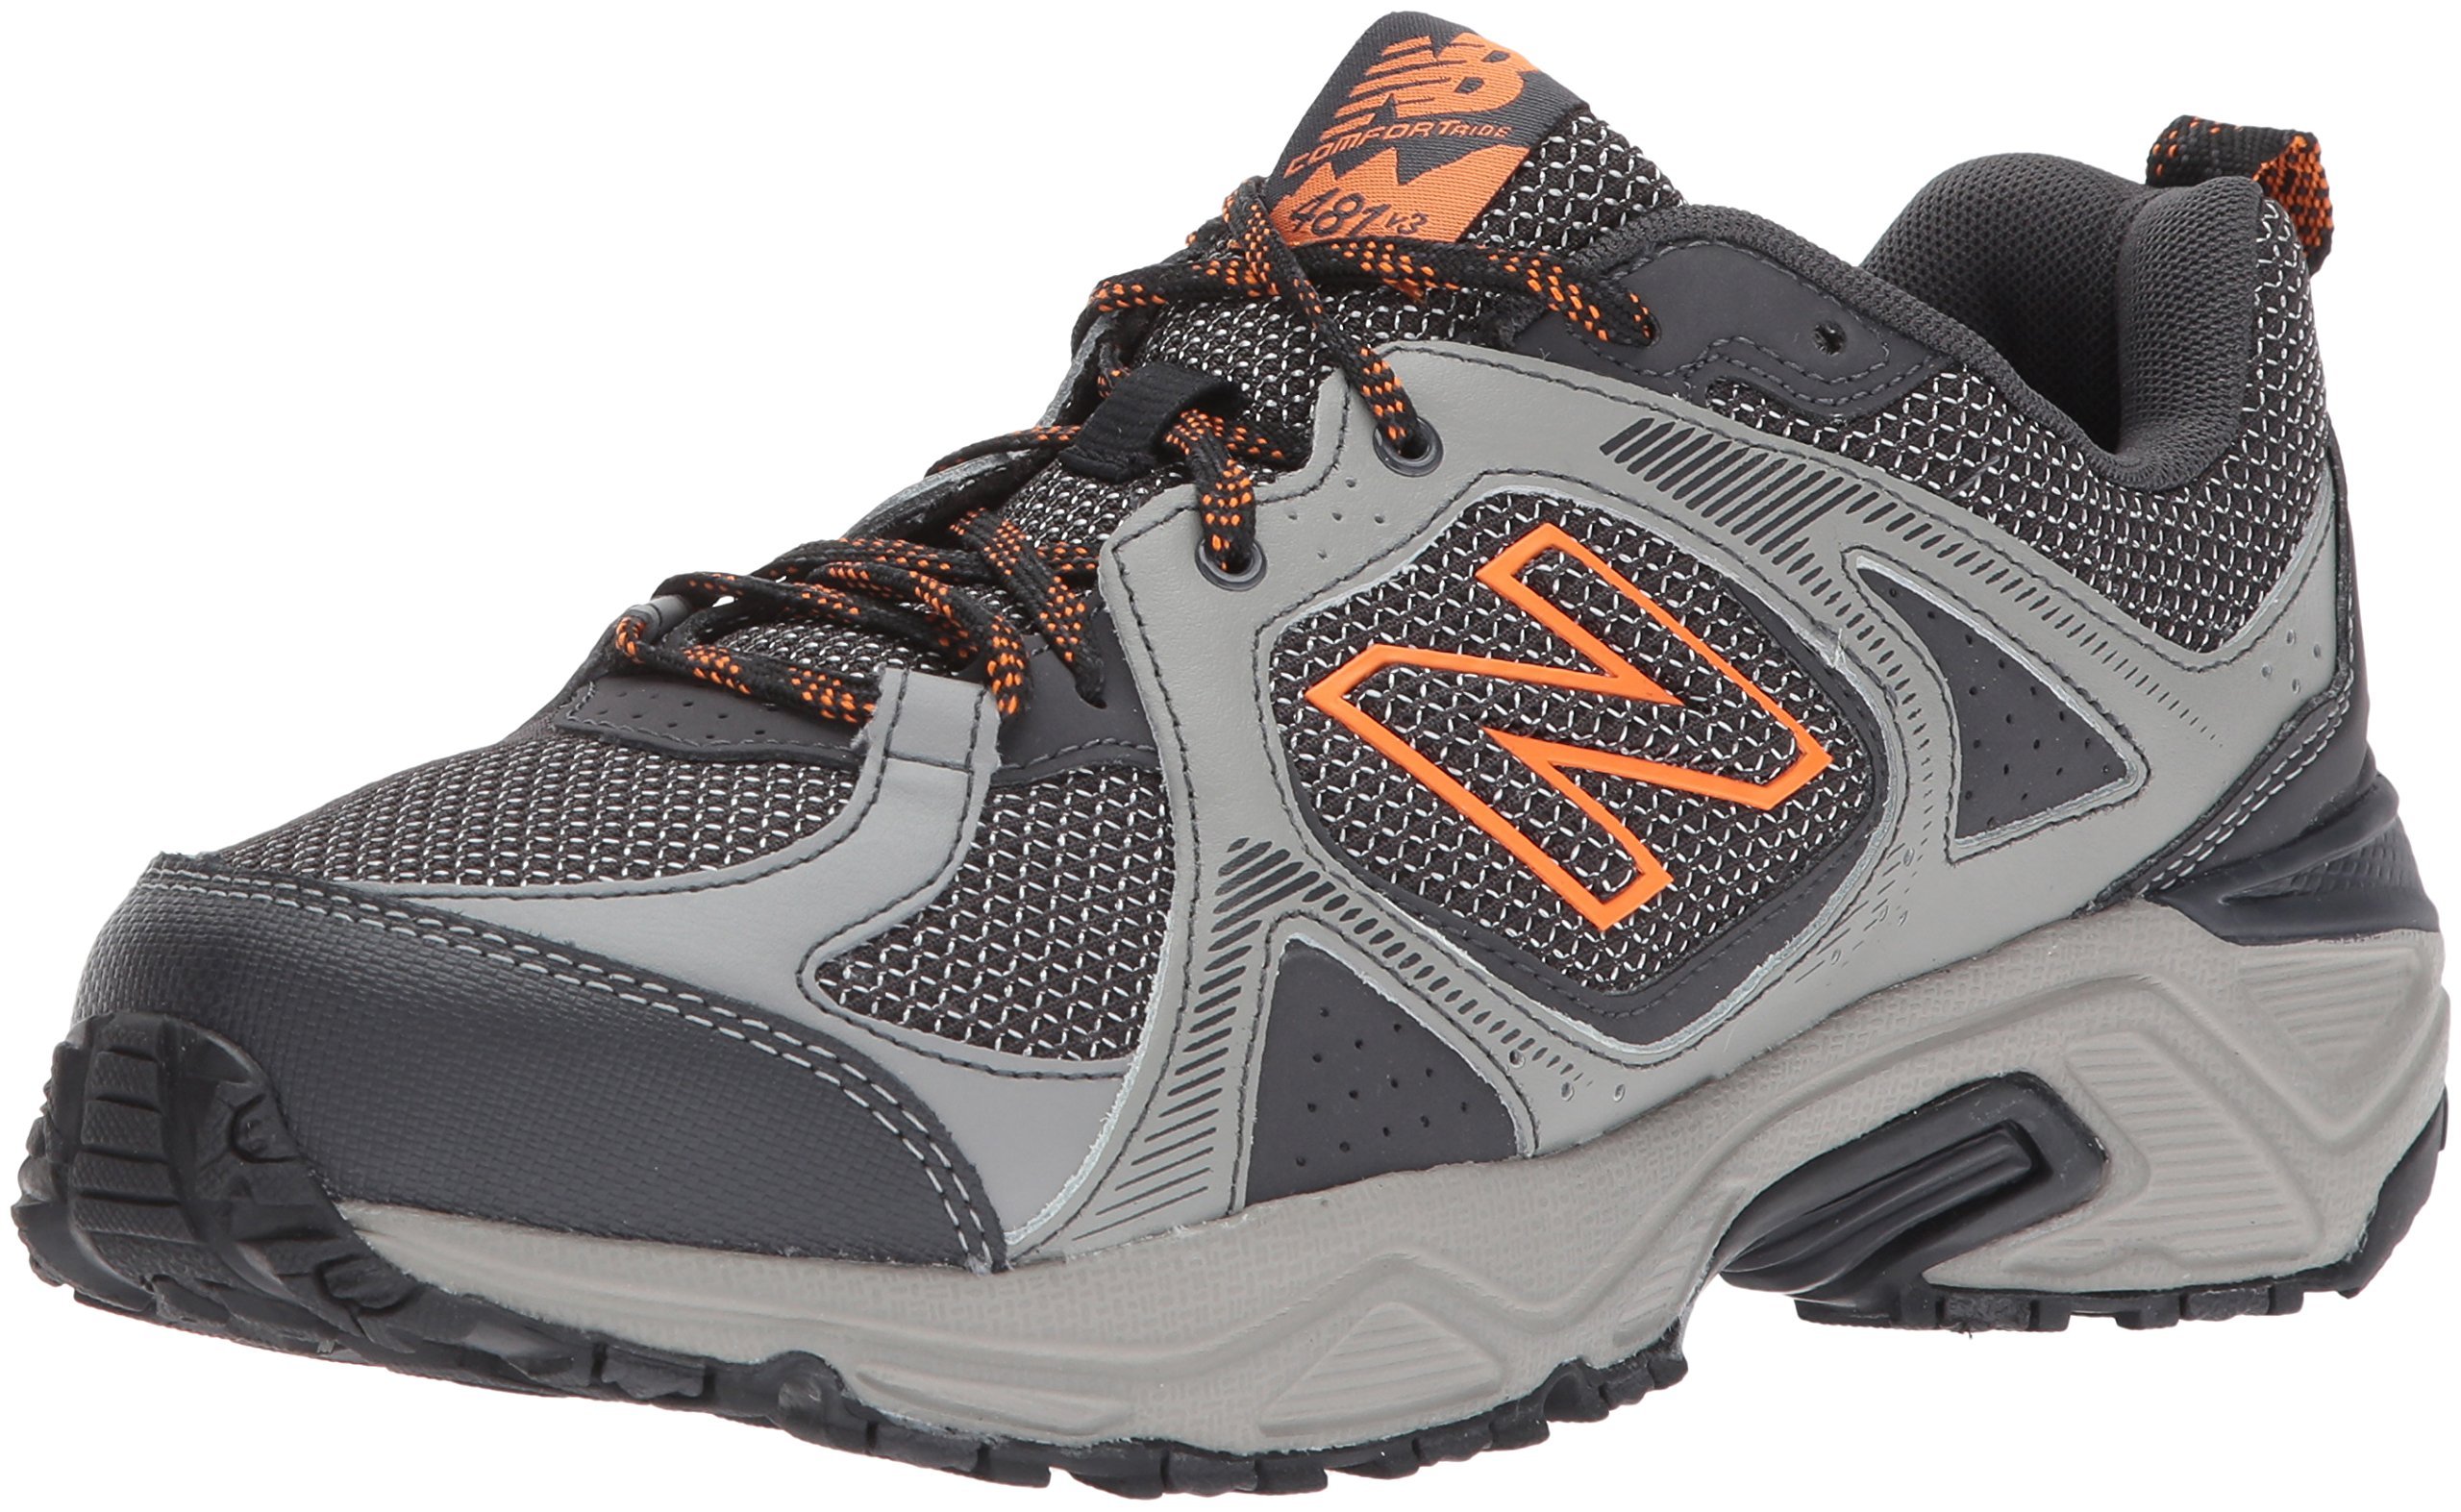 New Balance Men's 481V3 Cushioning Trail Running Shoe, Grey, 11 4E US by New Balance